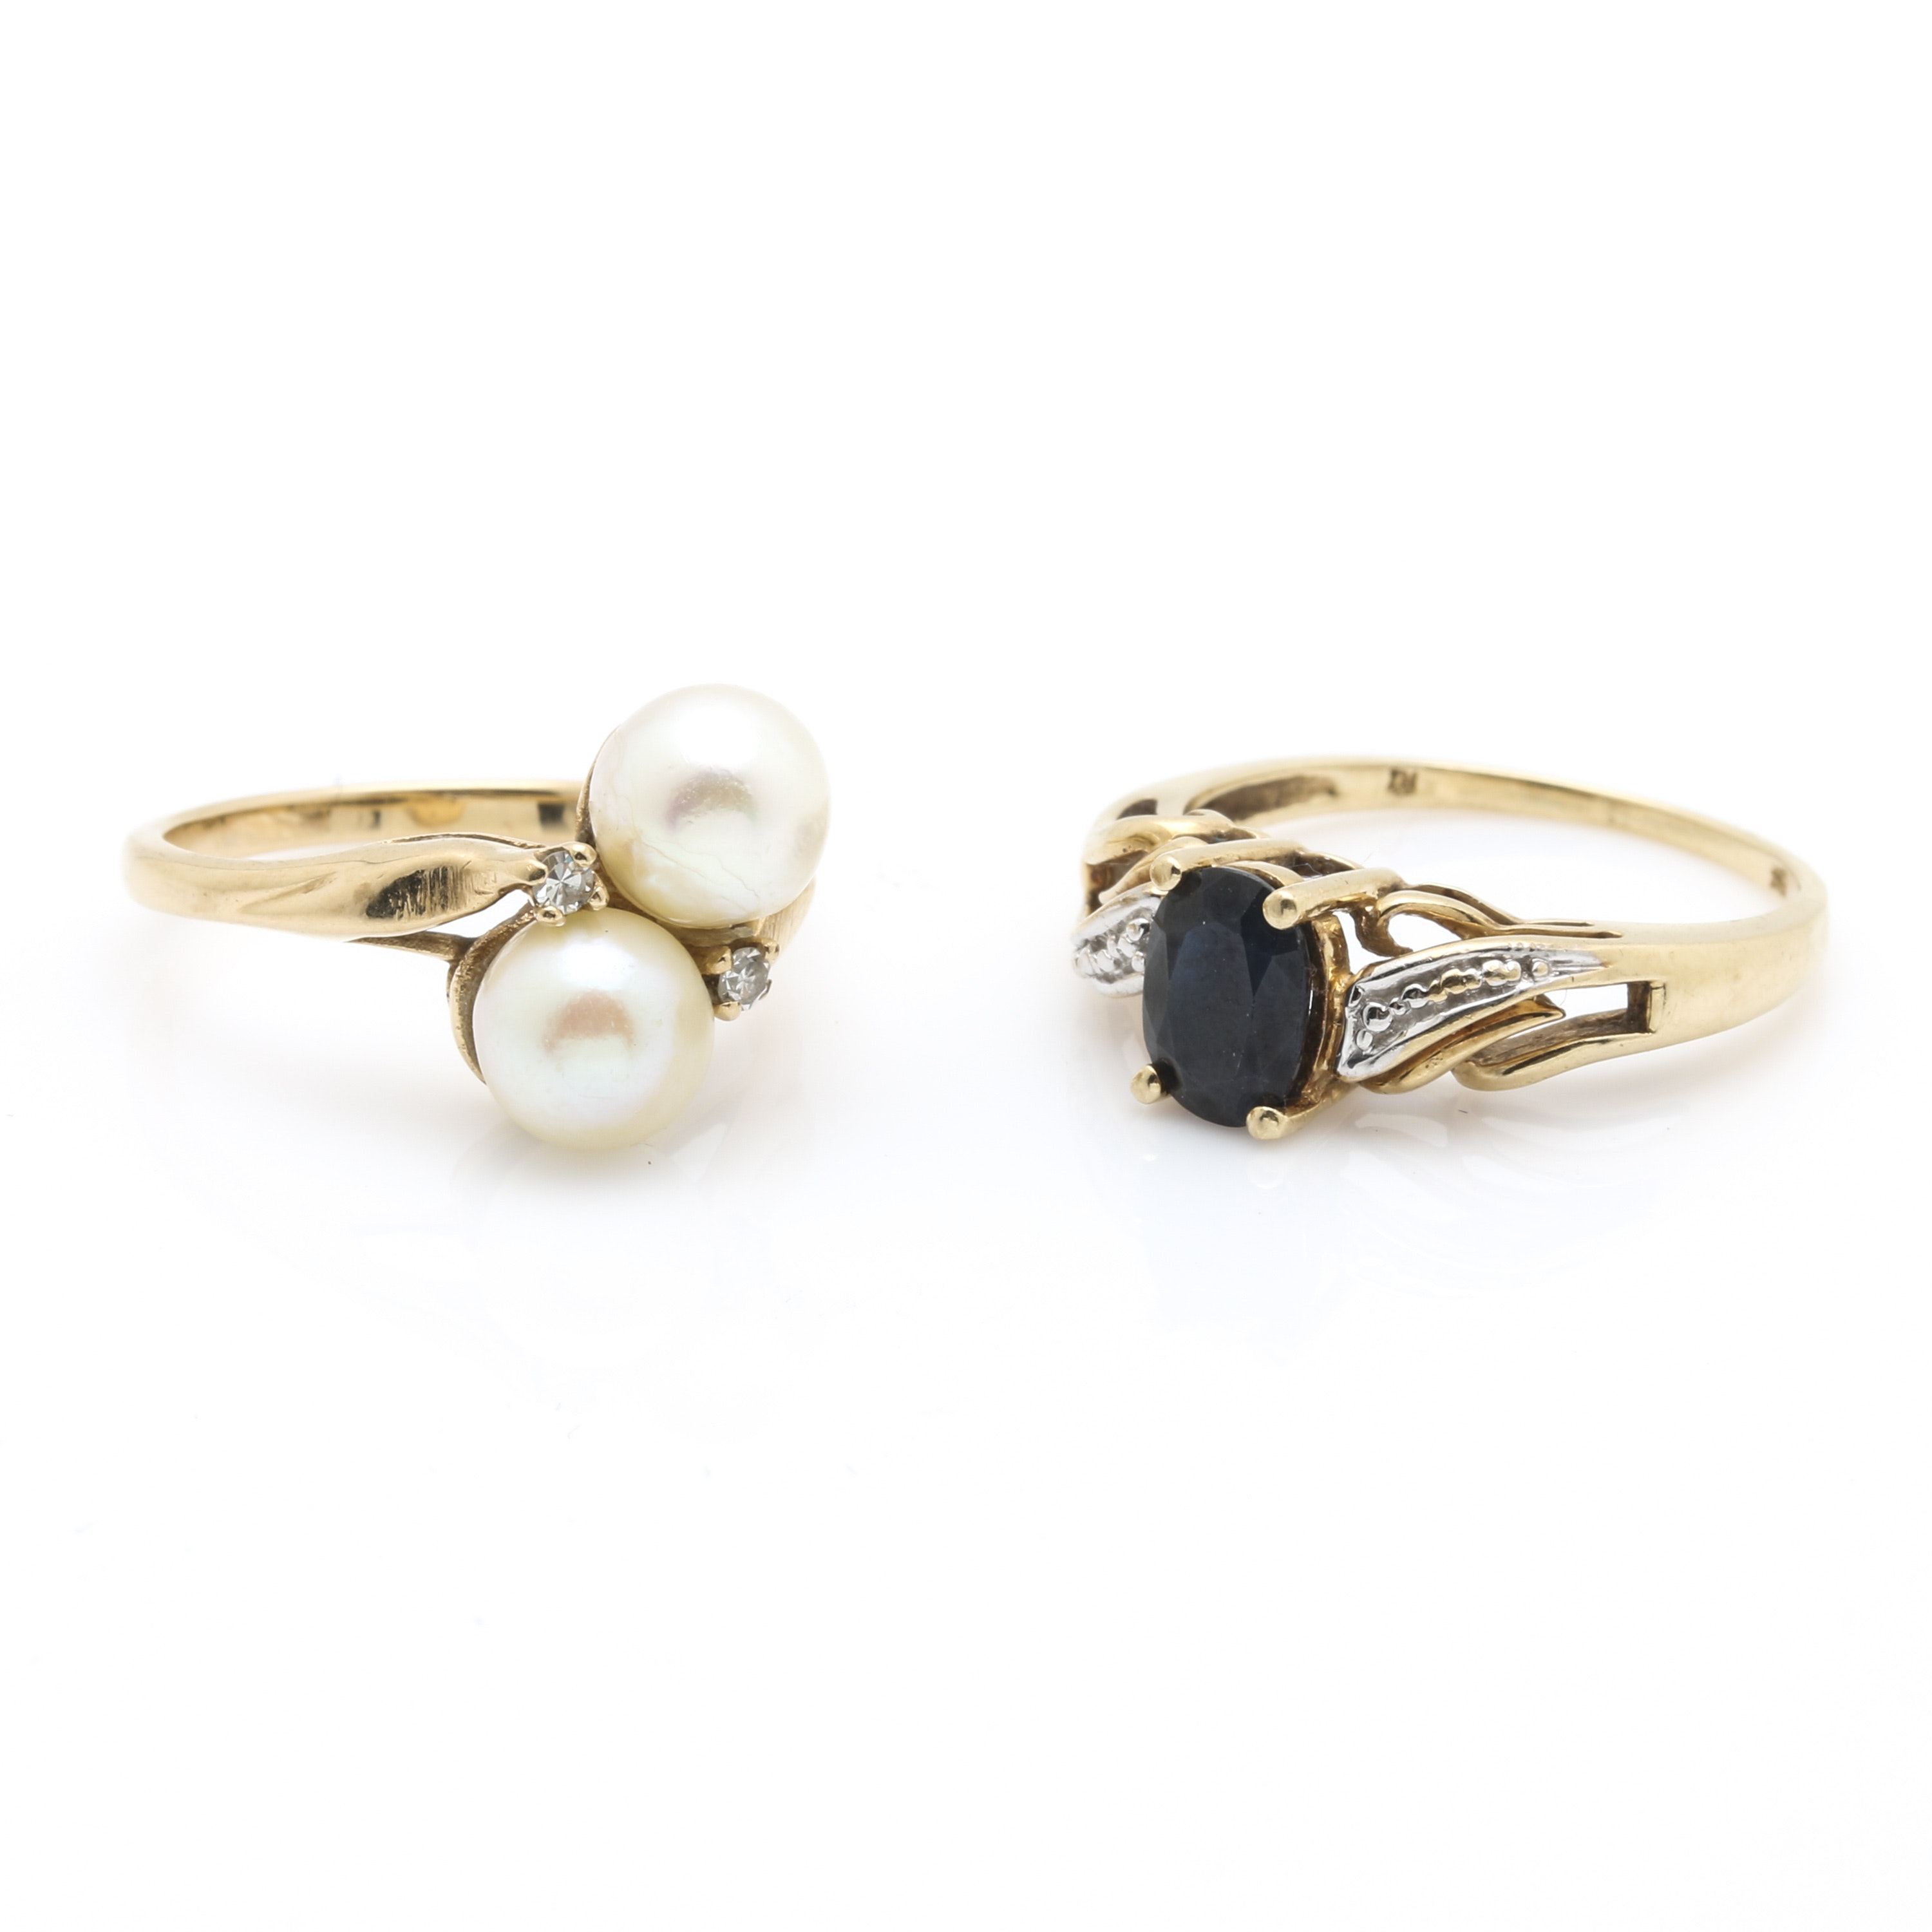 10K and 14K Yellow Gold Diamond and Gemstone Rings